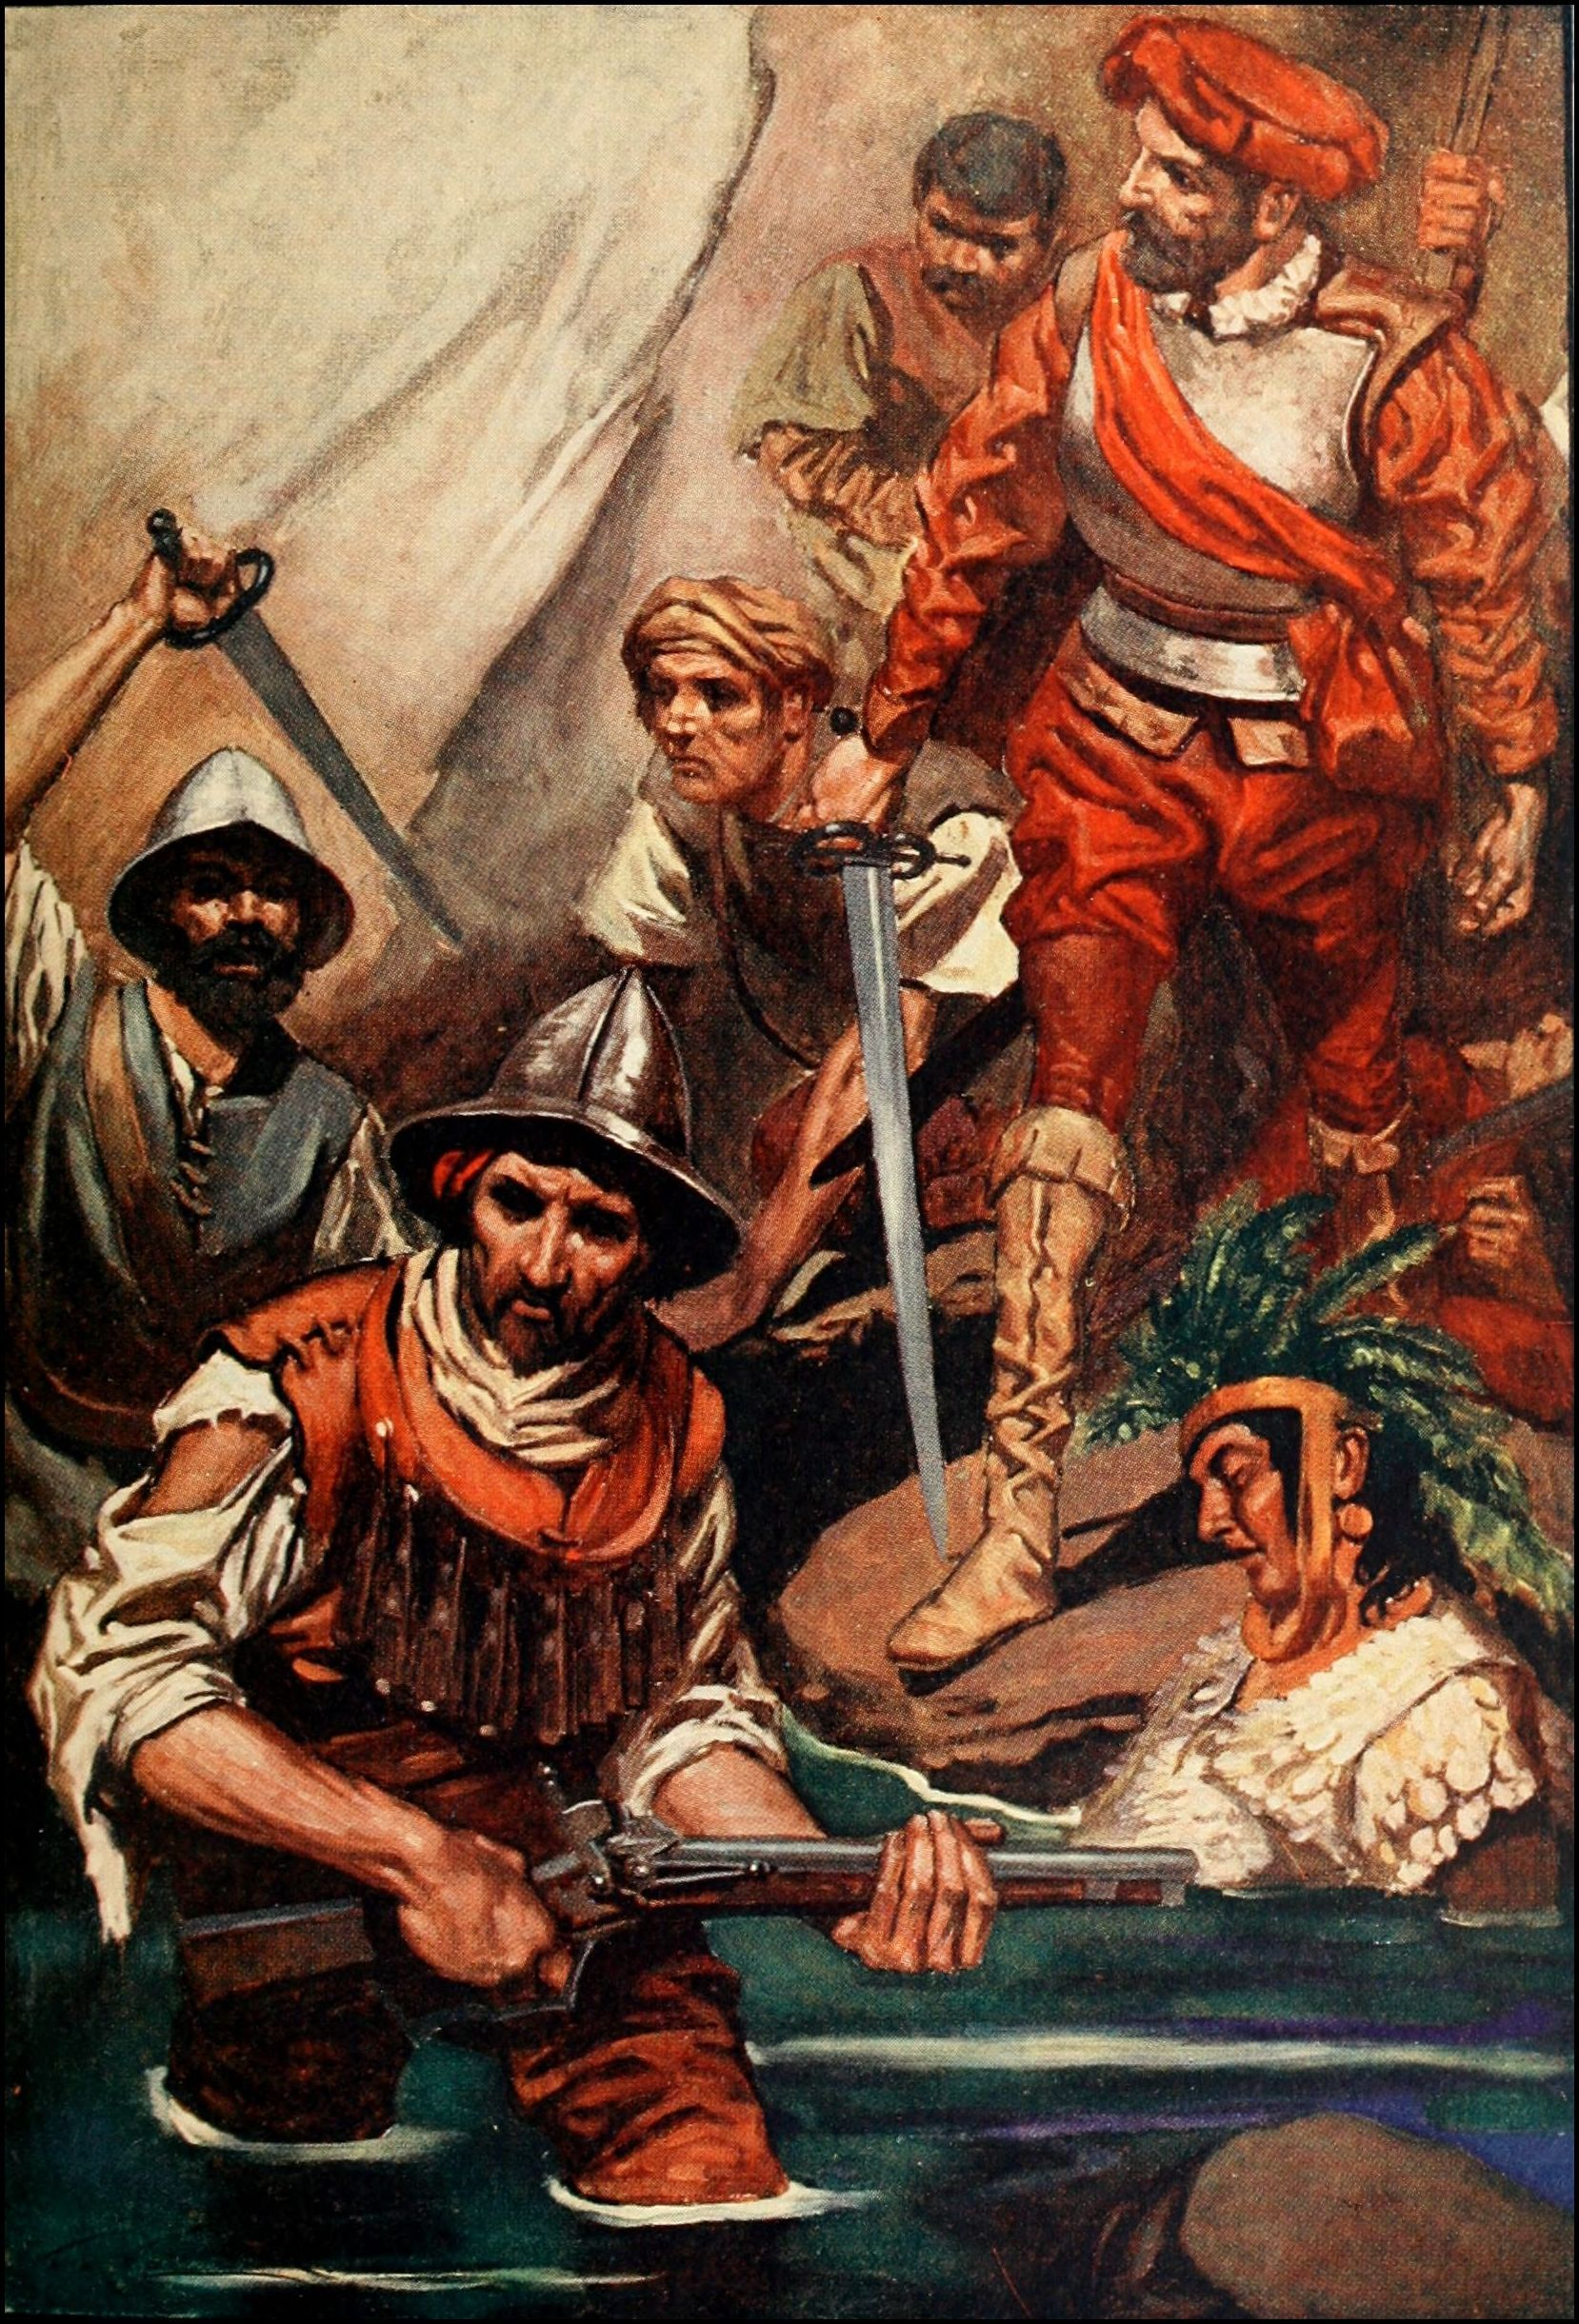 spanish mexico and tenochtitlan 1 the spanish reaction to tenochtitlan 2 the aztec reception to the spanish 3 how the two groups interacted with each other 4 how did the spanish take control over tenochtitlan and what was the outcome.